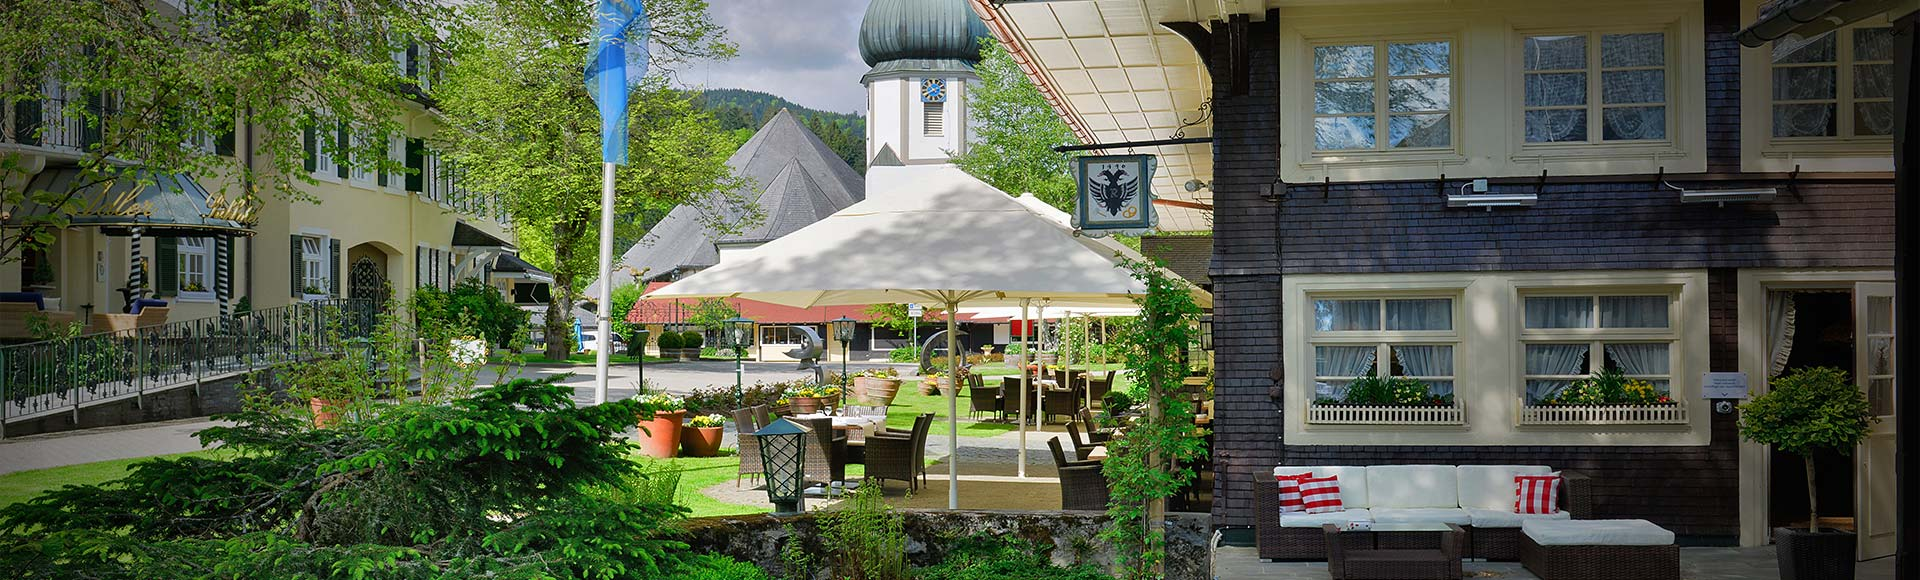 Adler Hochzeit Historic Hotel In The Black Forest With Wellness And Epicures